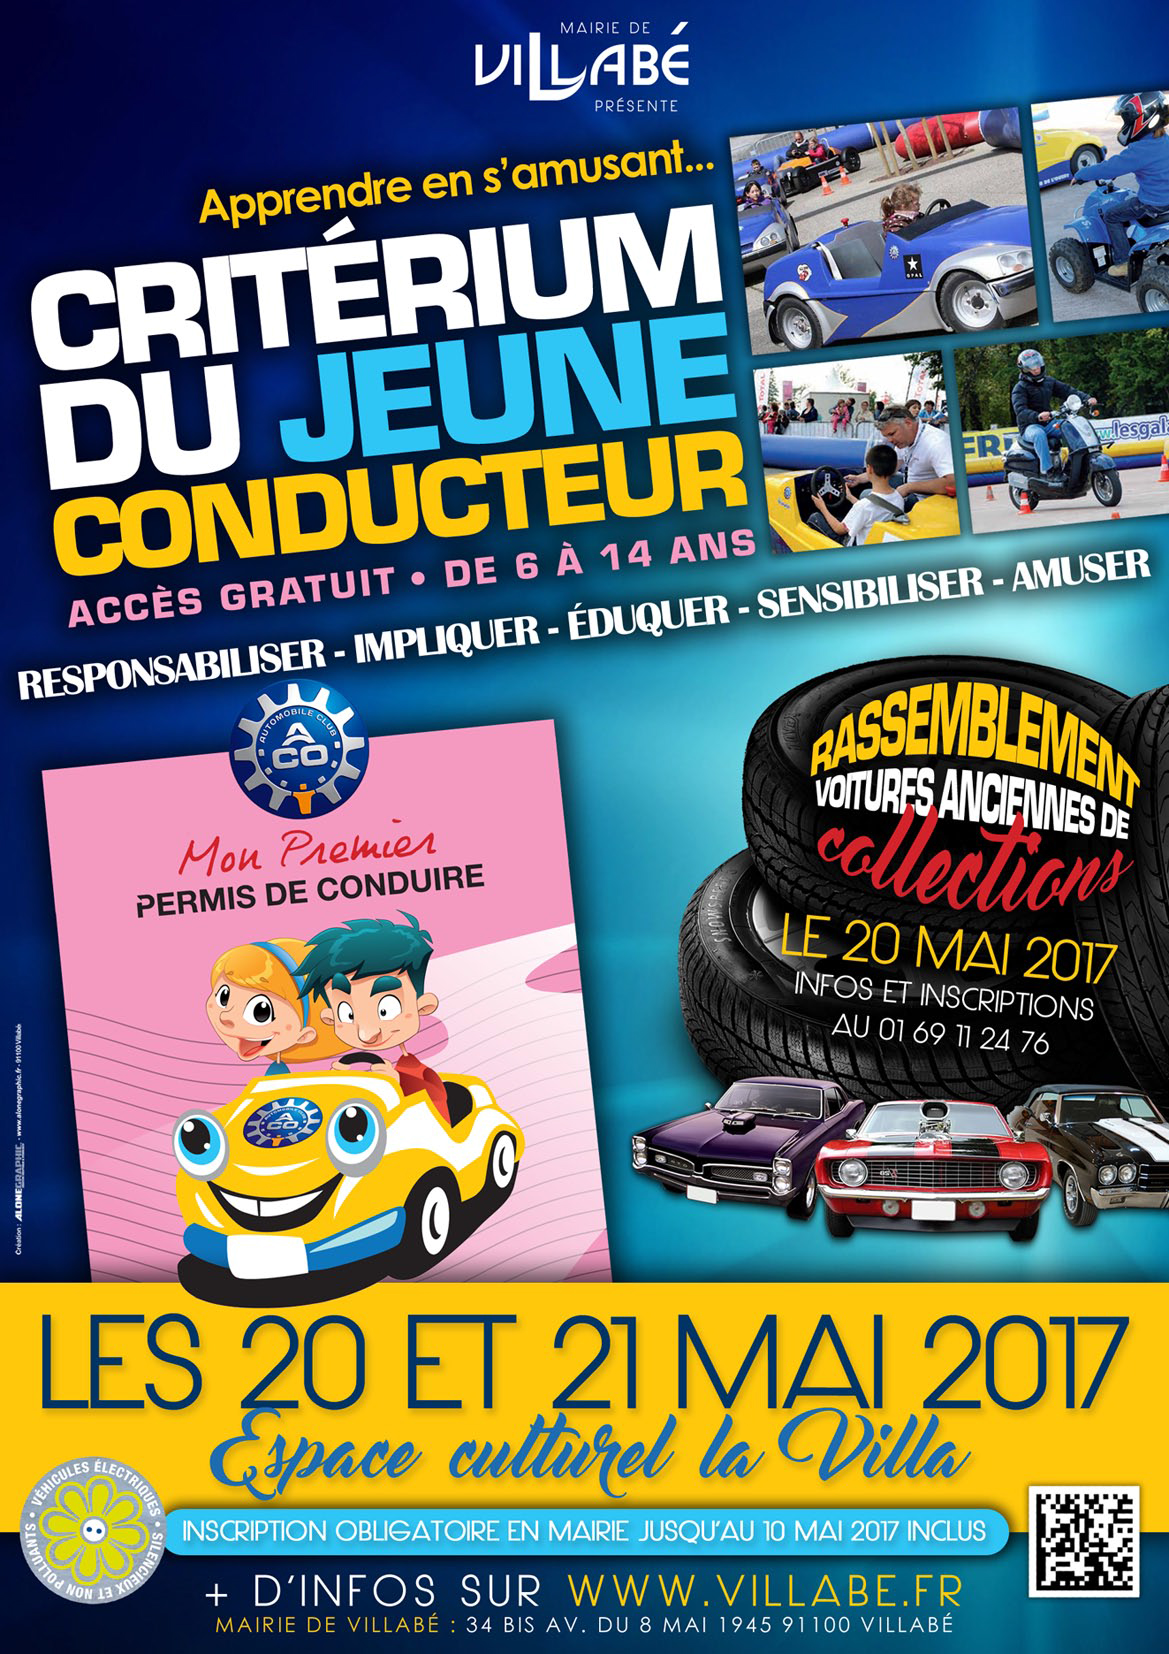 crit rium du jeune conducteur 20 et 21 mai 2017. Black Bedroom Furniture Sets. Home Design Ideas